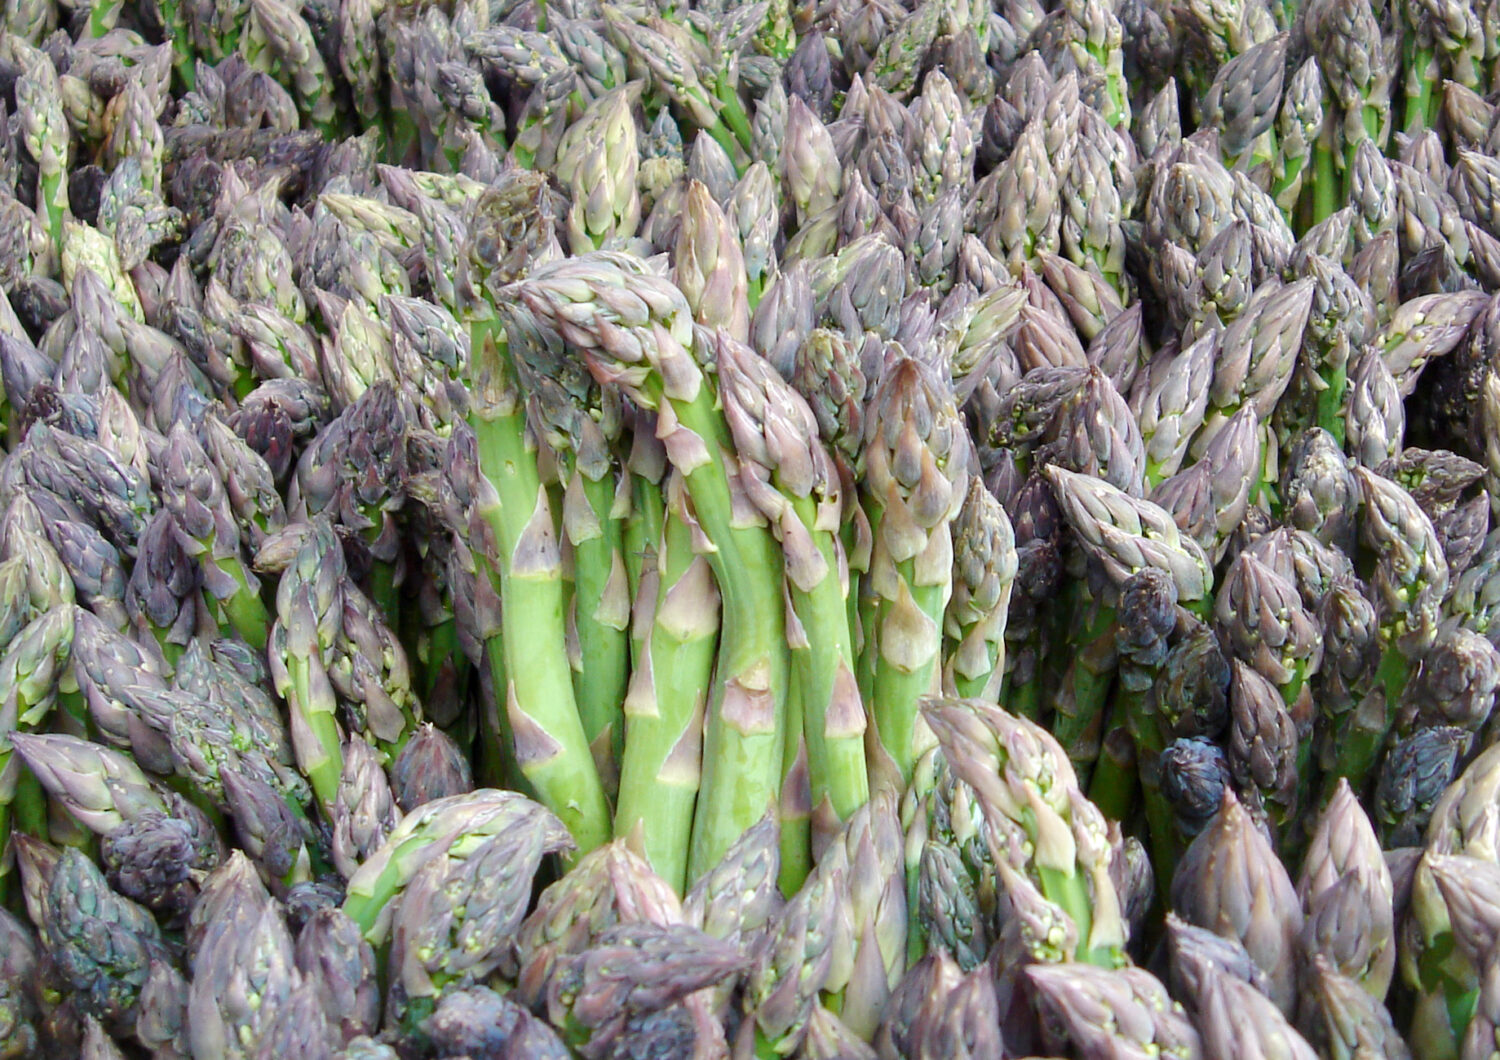 Asparagus - Essential Phytochemical